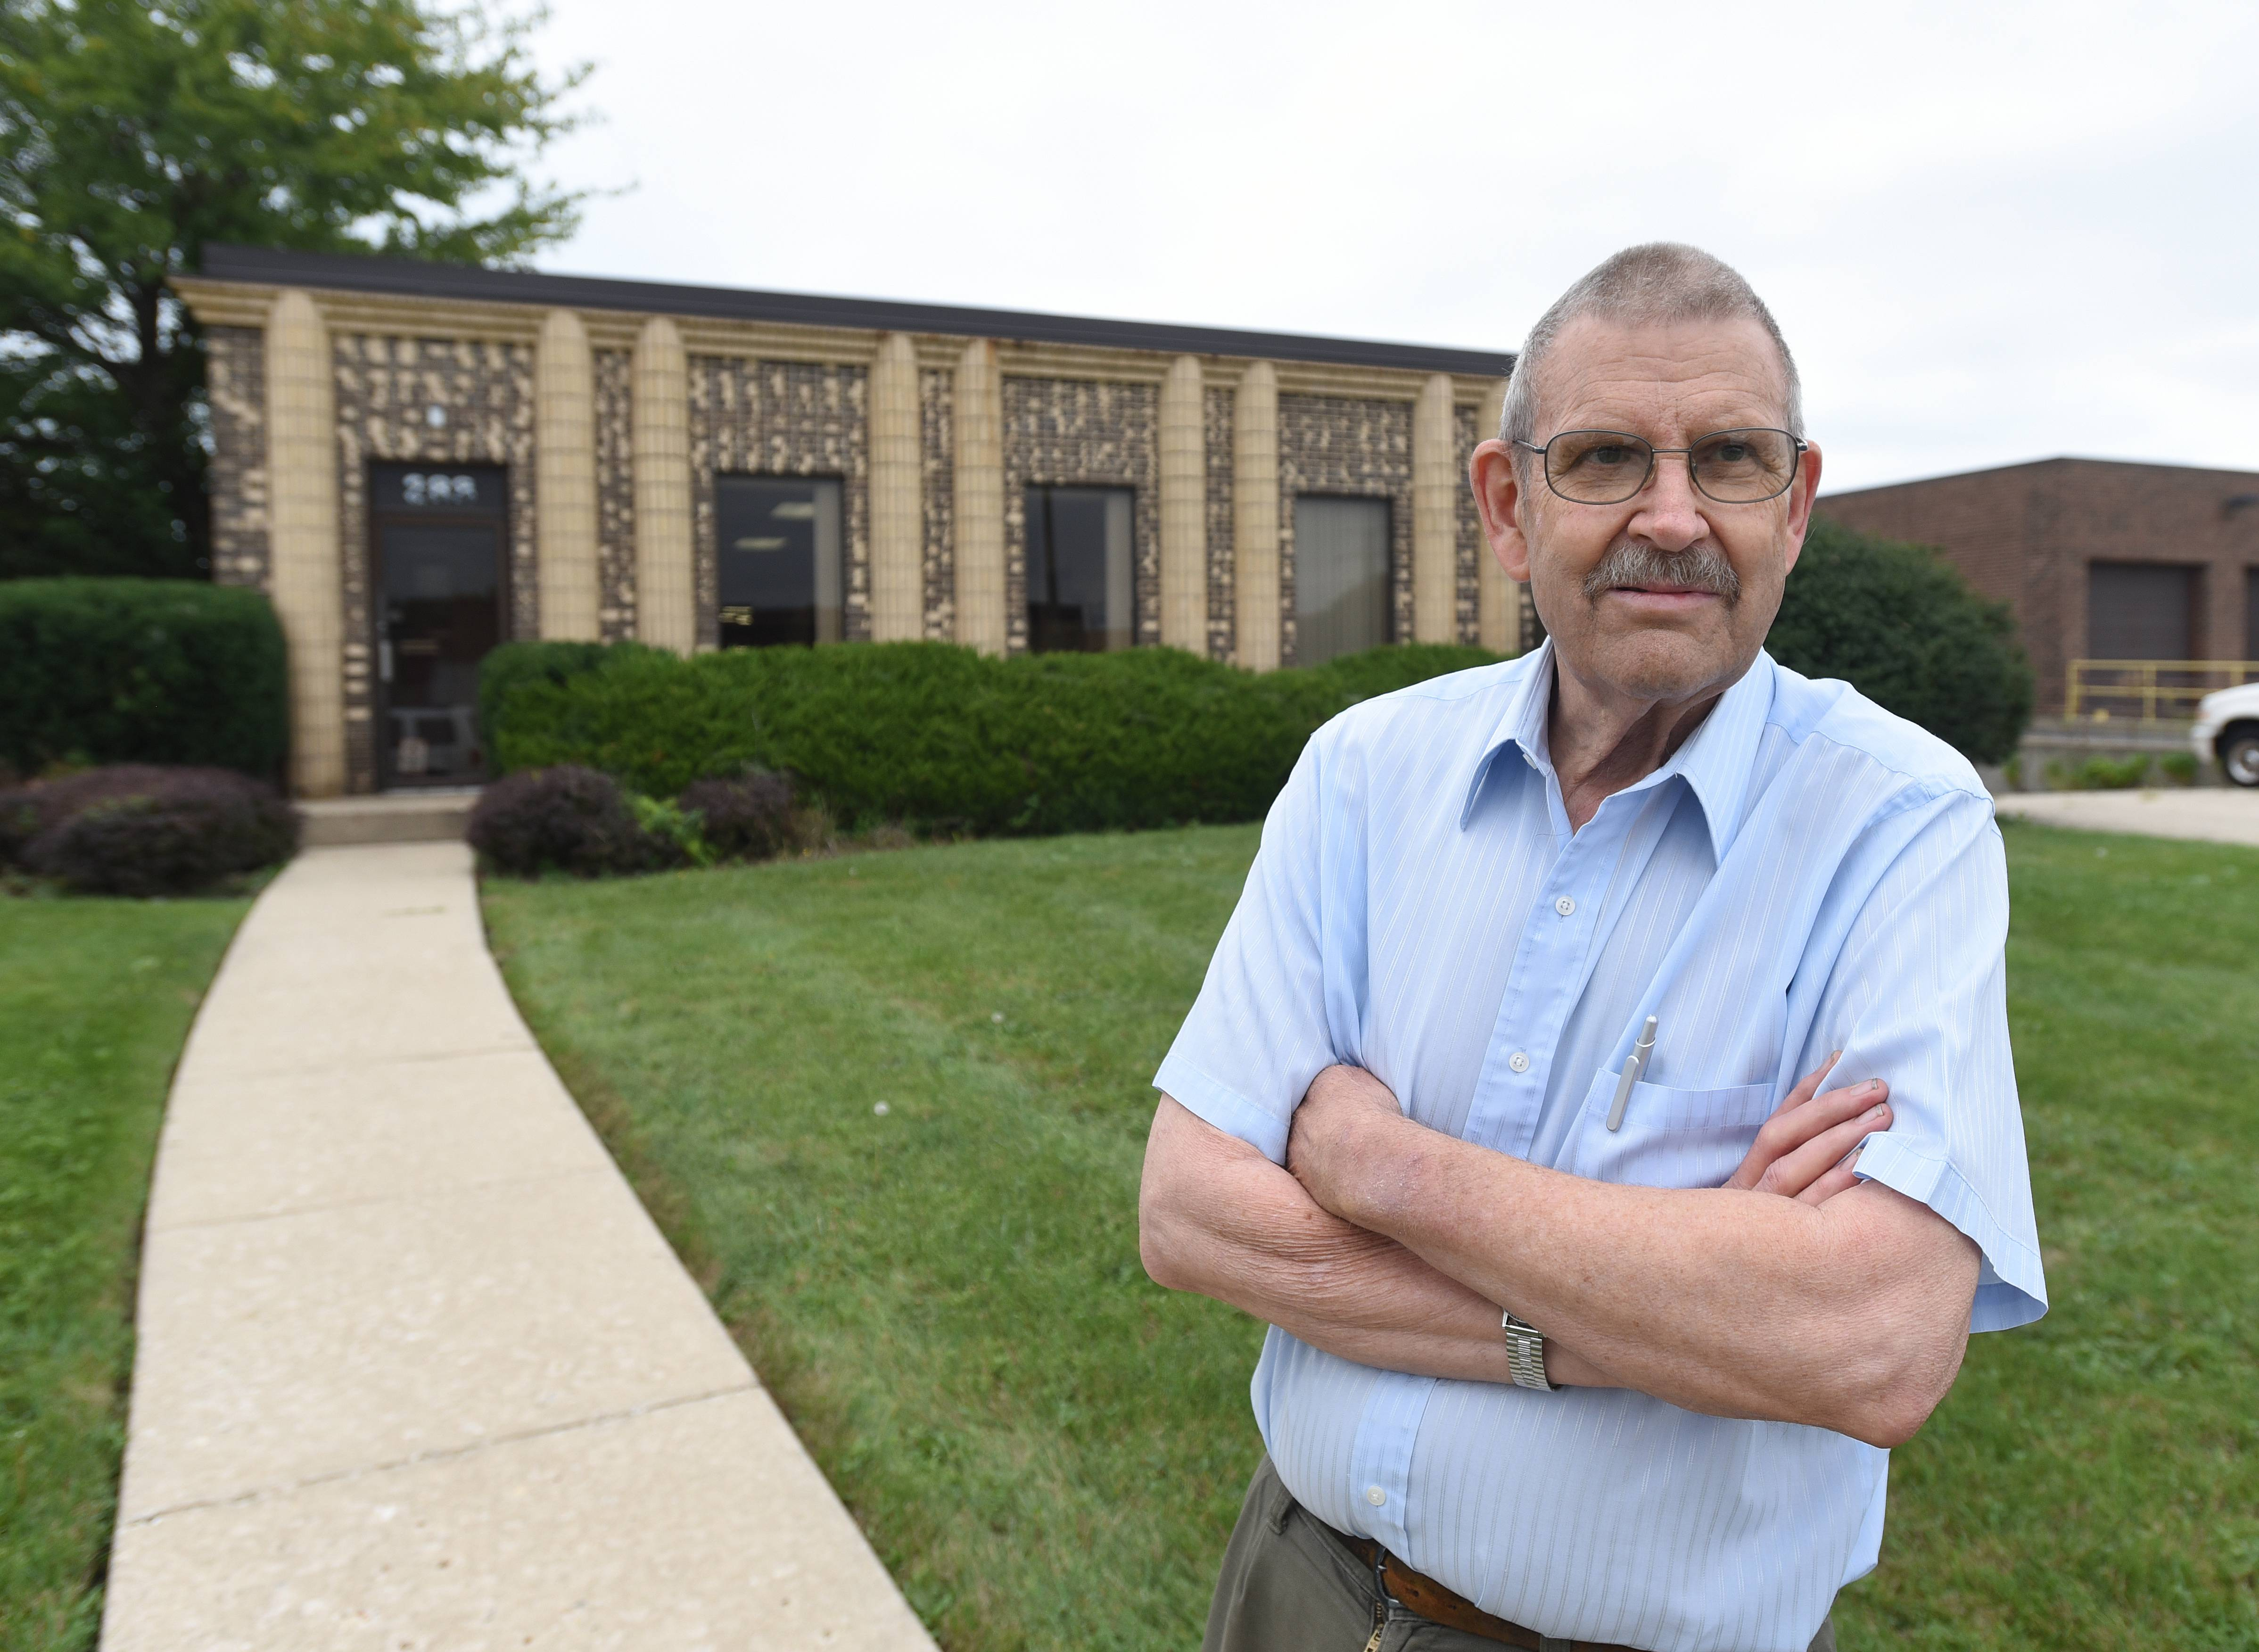 David Hale, founder and former owner of Scale-Tronix in Carol Stream, stands in front the factory that is expected to close in November under new owners.